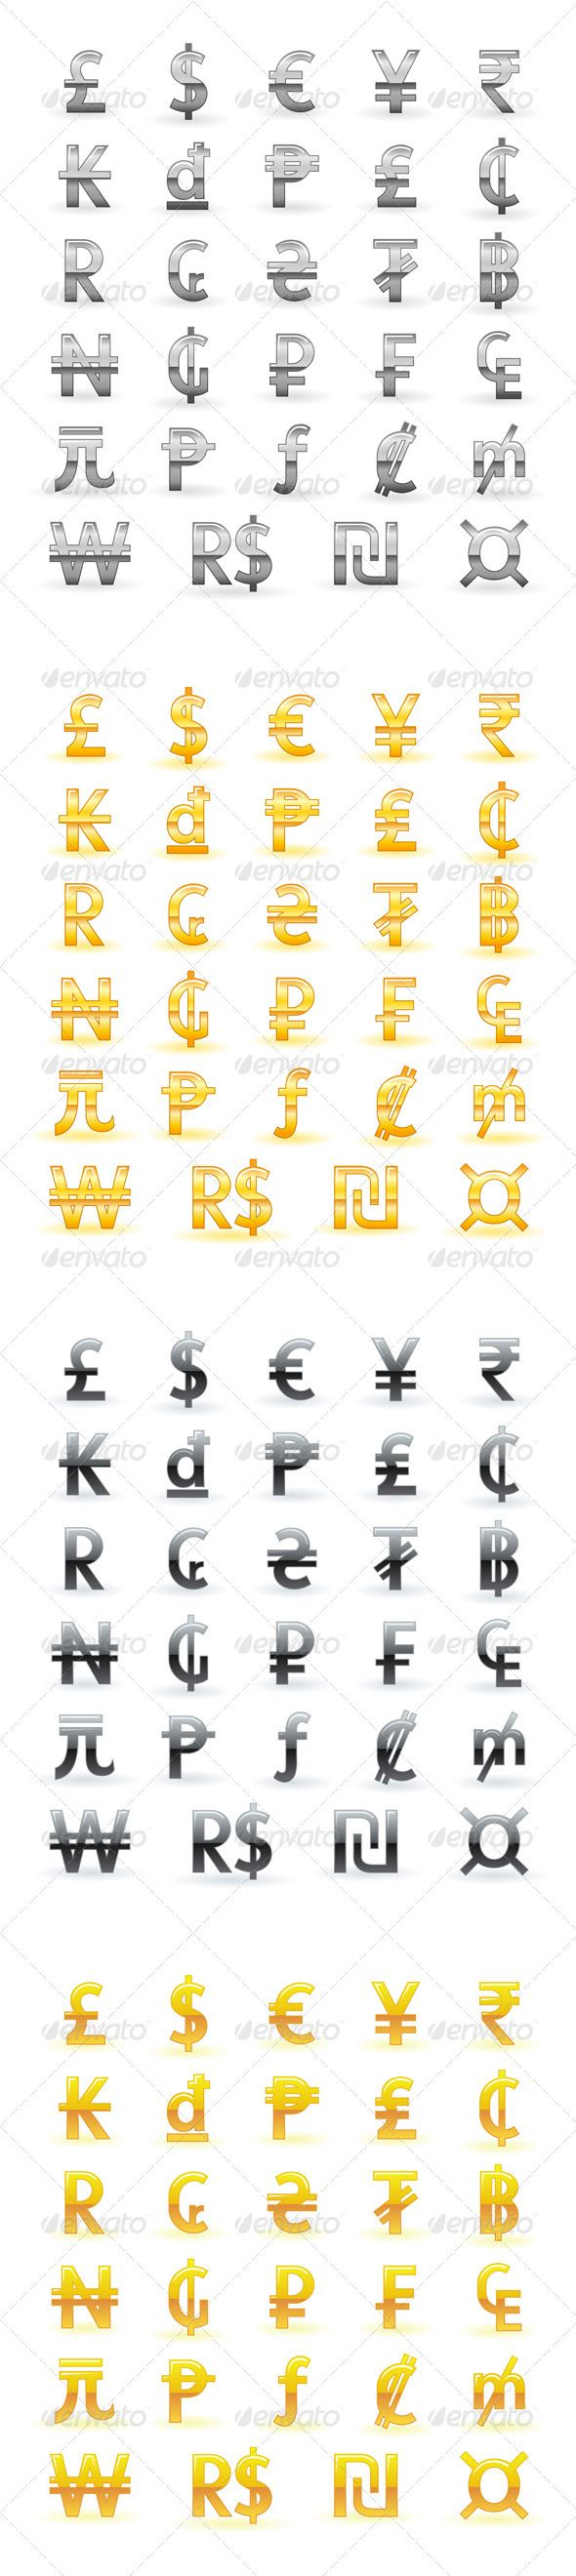 World Currency Symbols Pinterest Symbols